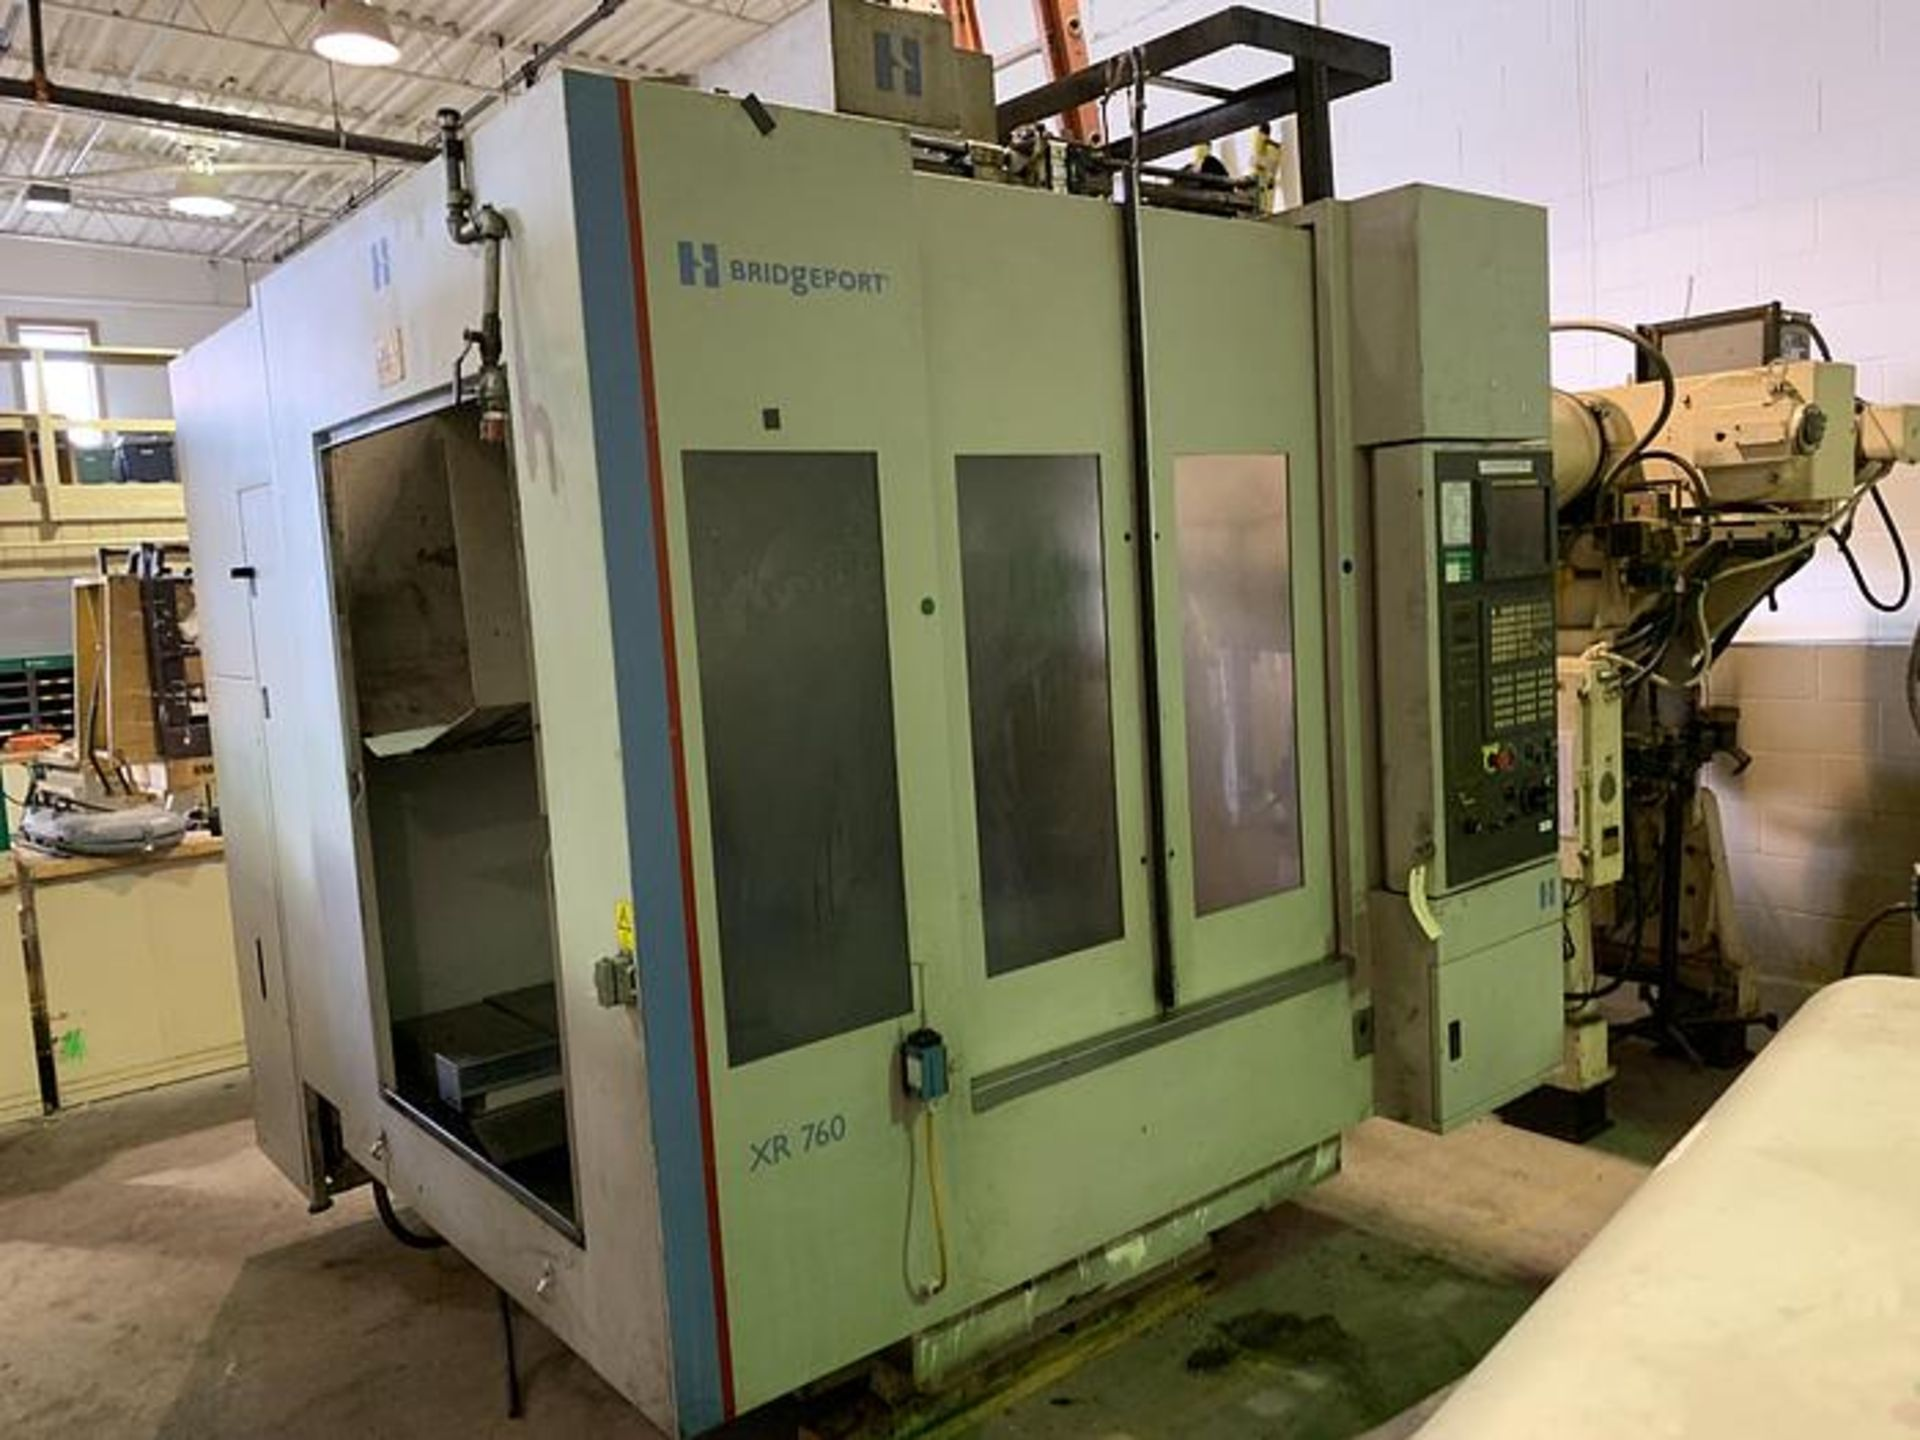 """HARDINGE XR760 VMC PRODUCTION CENTER 30""""X24""""X24"""" W/4TH AXIS TRUNION, YEAR 2010, SN XRAB0A0002 - Image 2 of 14"""